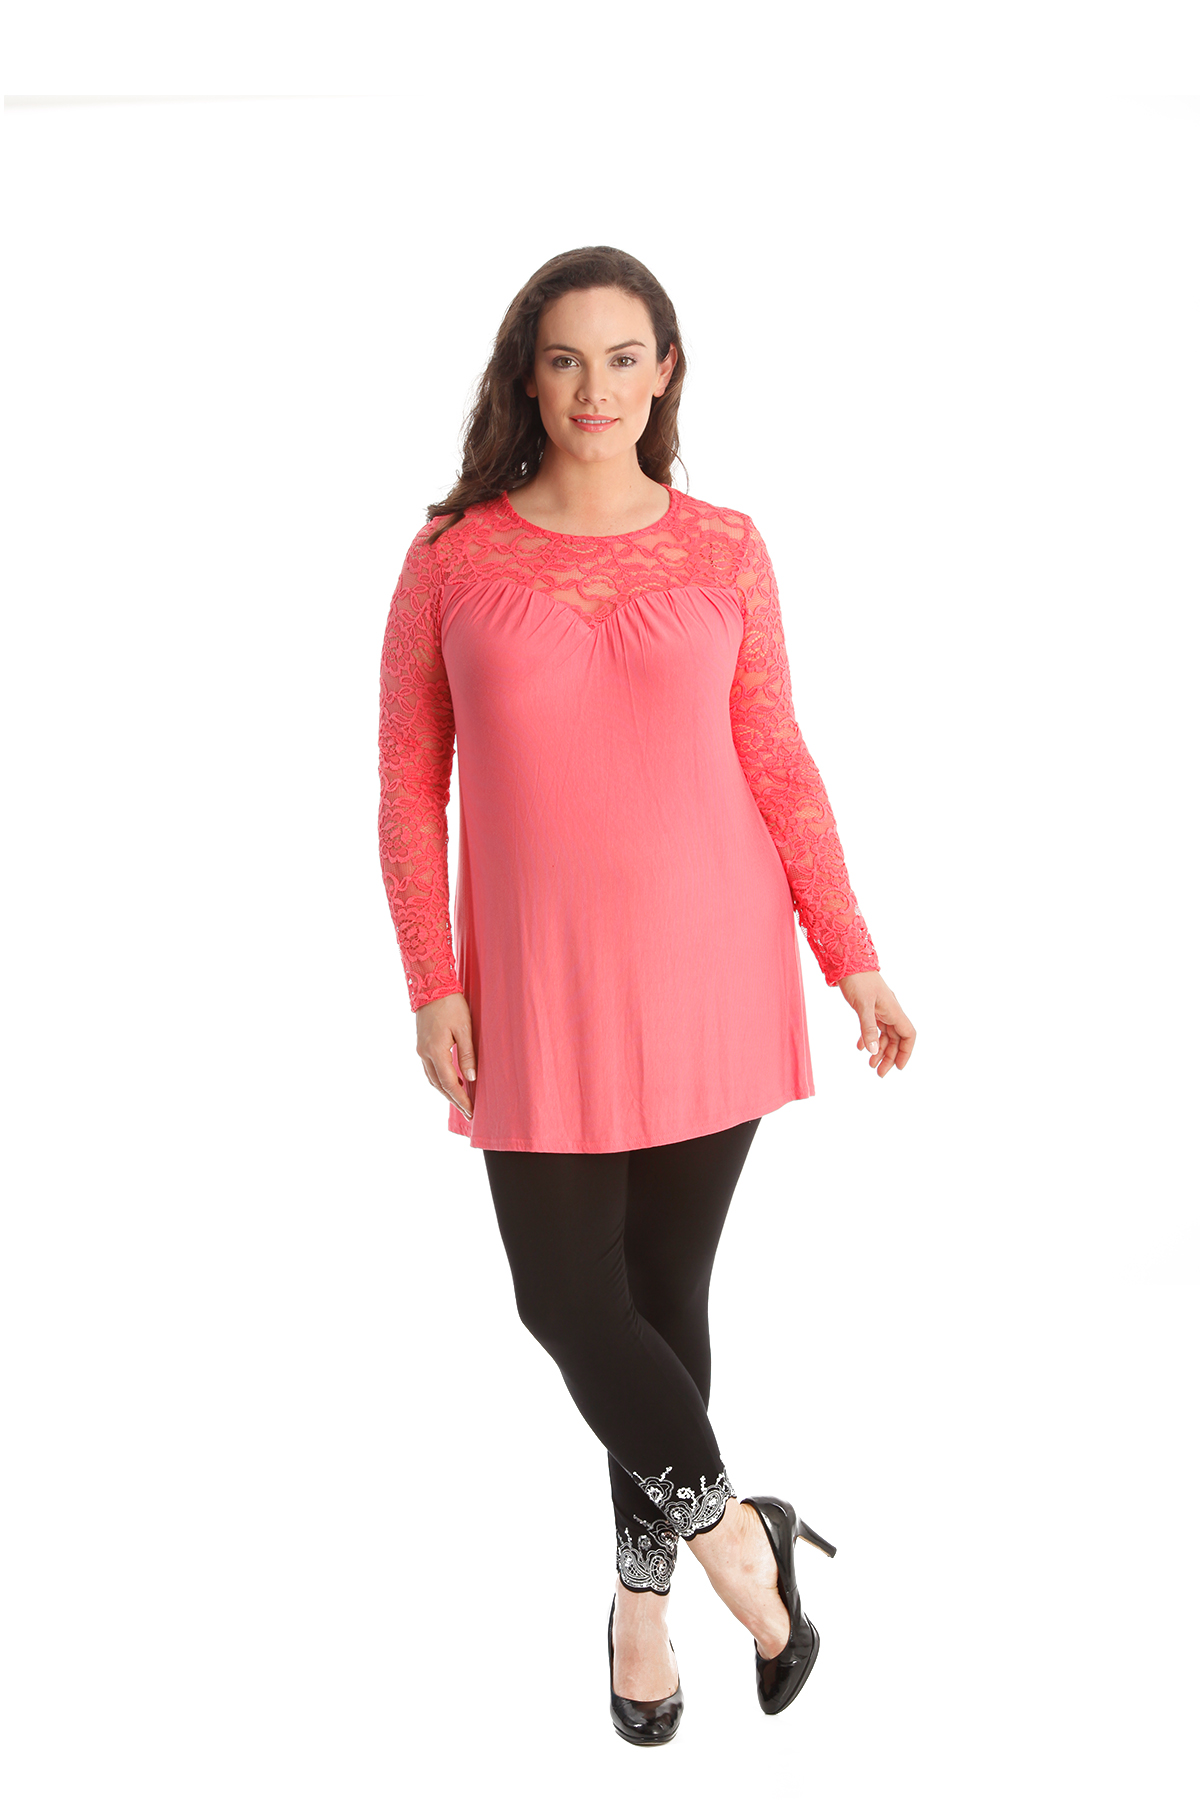 The Go Silk women's plus size collection features a range of roomy shirts in various patterns and styles, linen and belted shirt dresses, pants, and much more. Neiman Marcus offers a great selection of the Go Silk plus size clothing collection, including Go Silk tops, jackets, pants, and more.